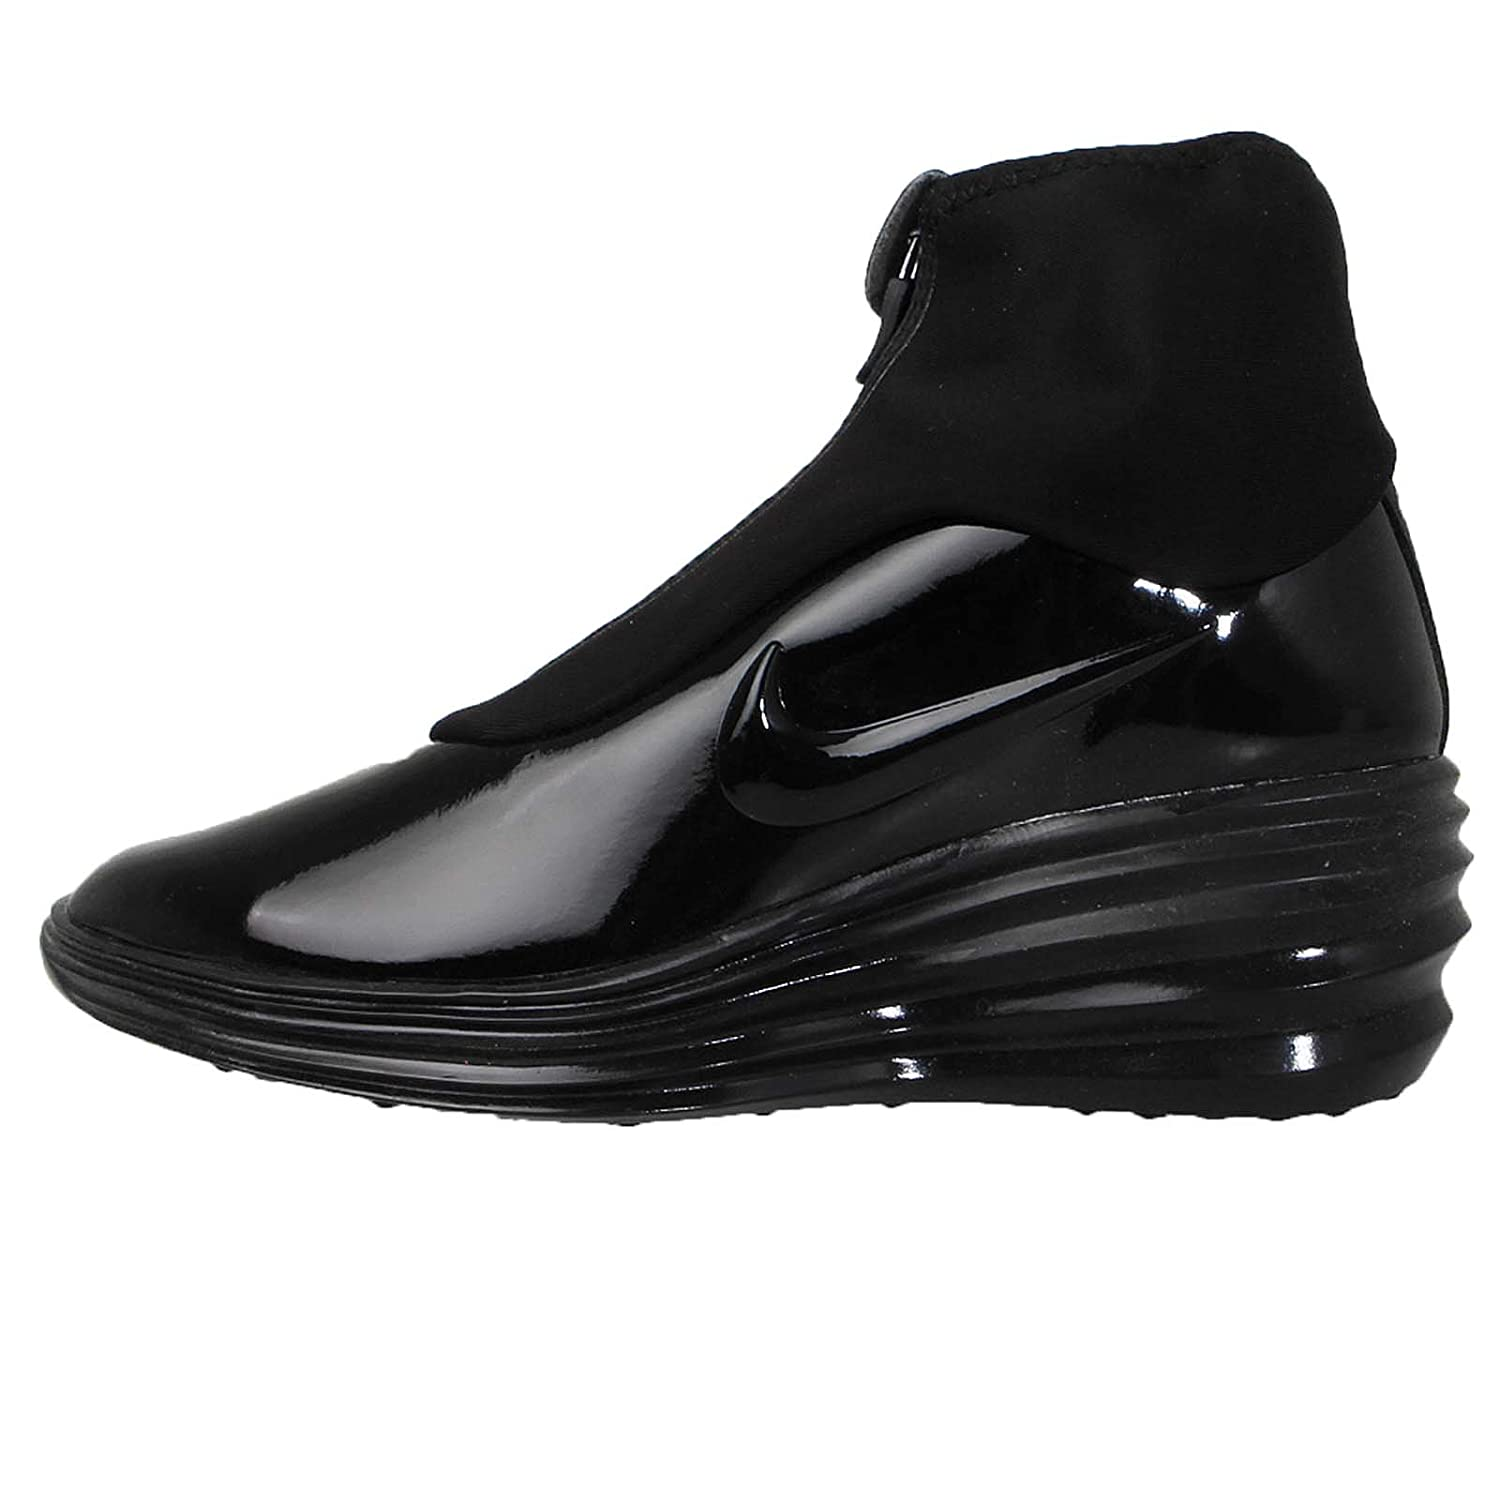 best website 66c3e a0c97 NIKE Lunar Elite Sky Hi Sneaker Boot Black Womens Black Size  5.5   Amazon.co.uk  Shoes   Bags